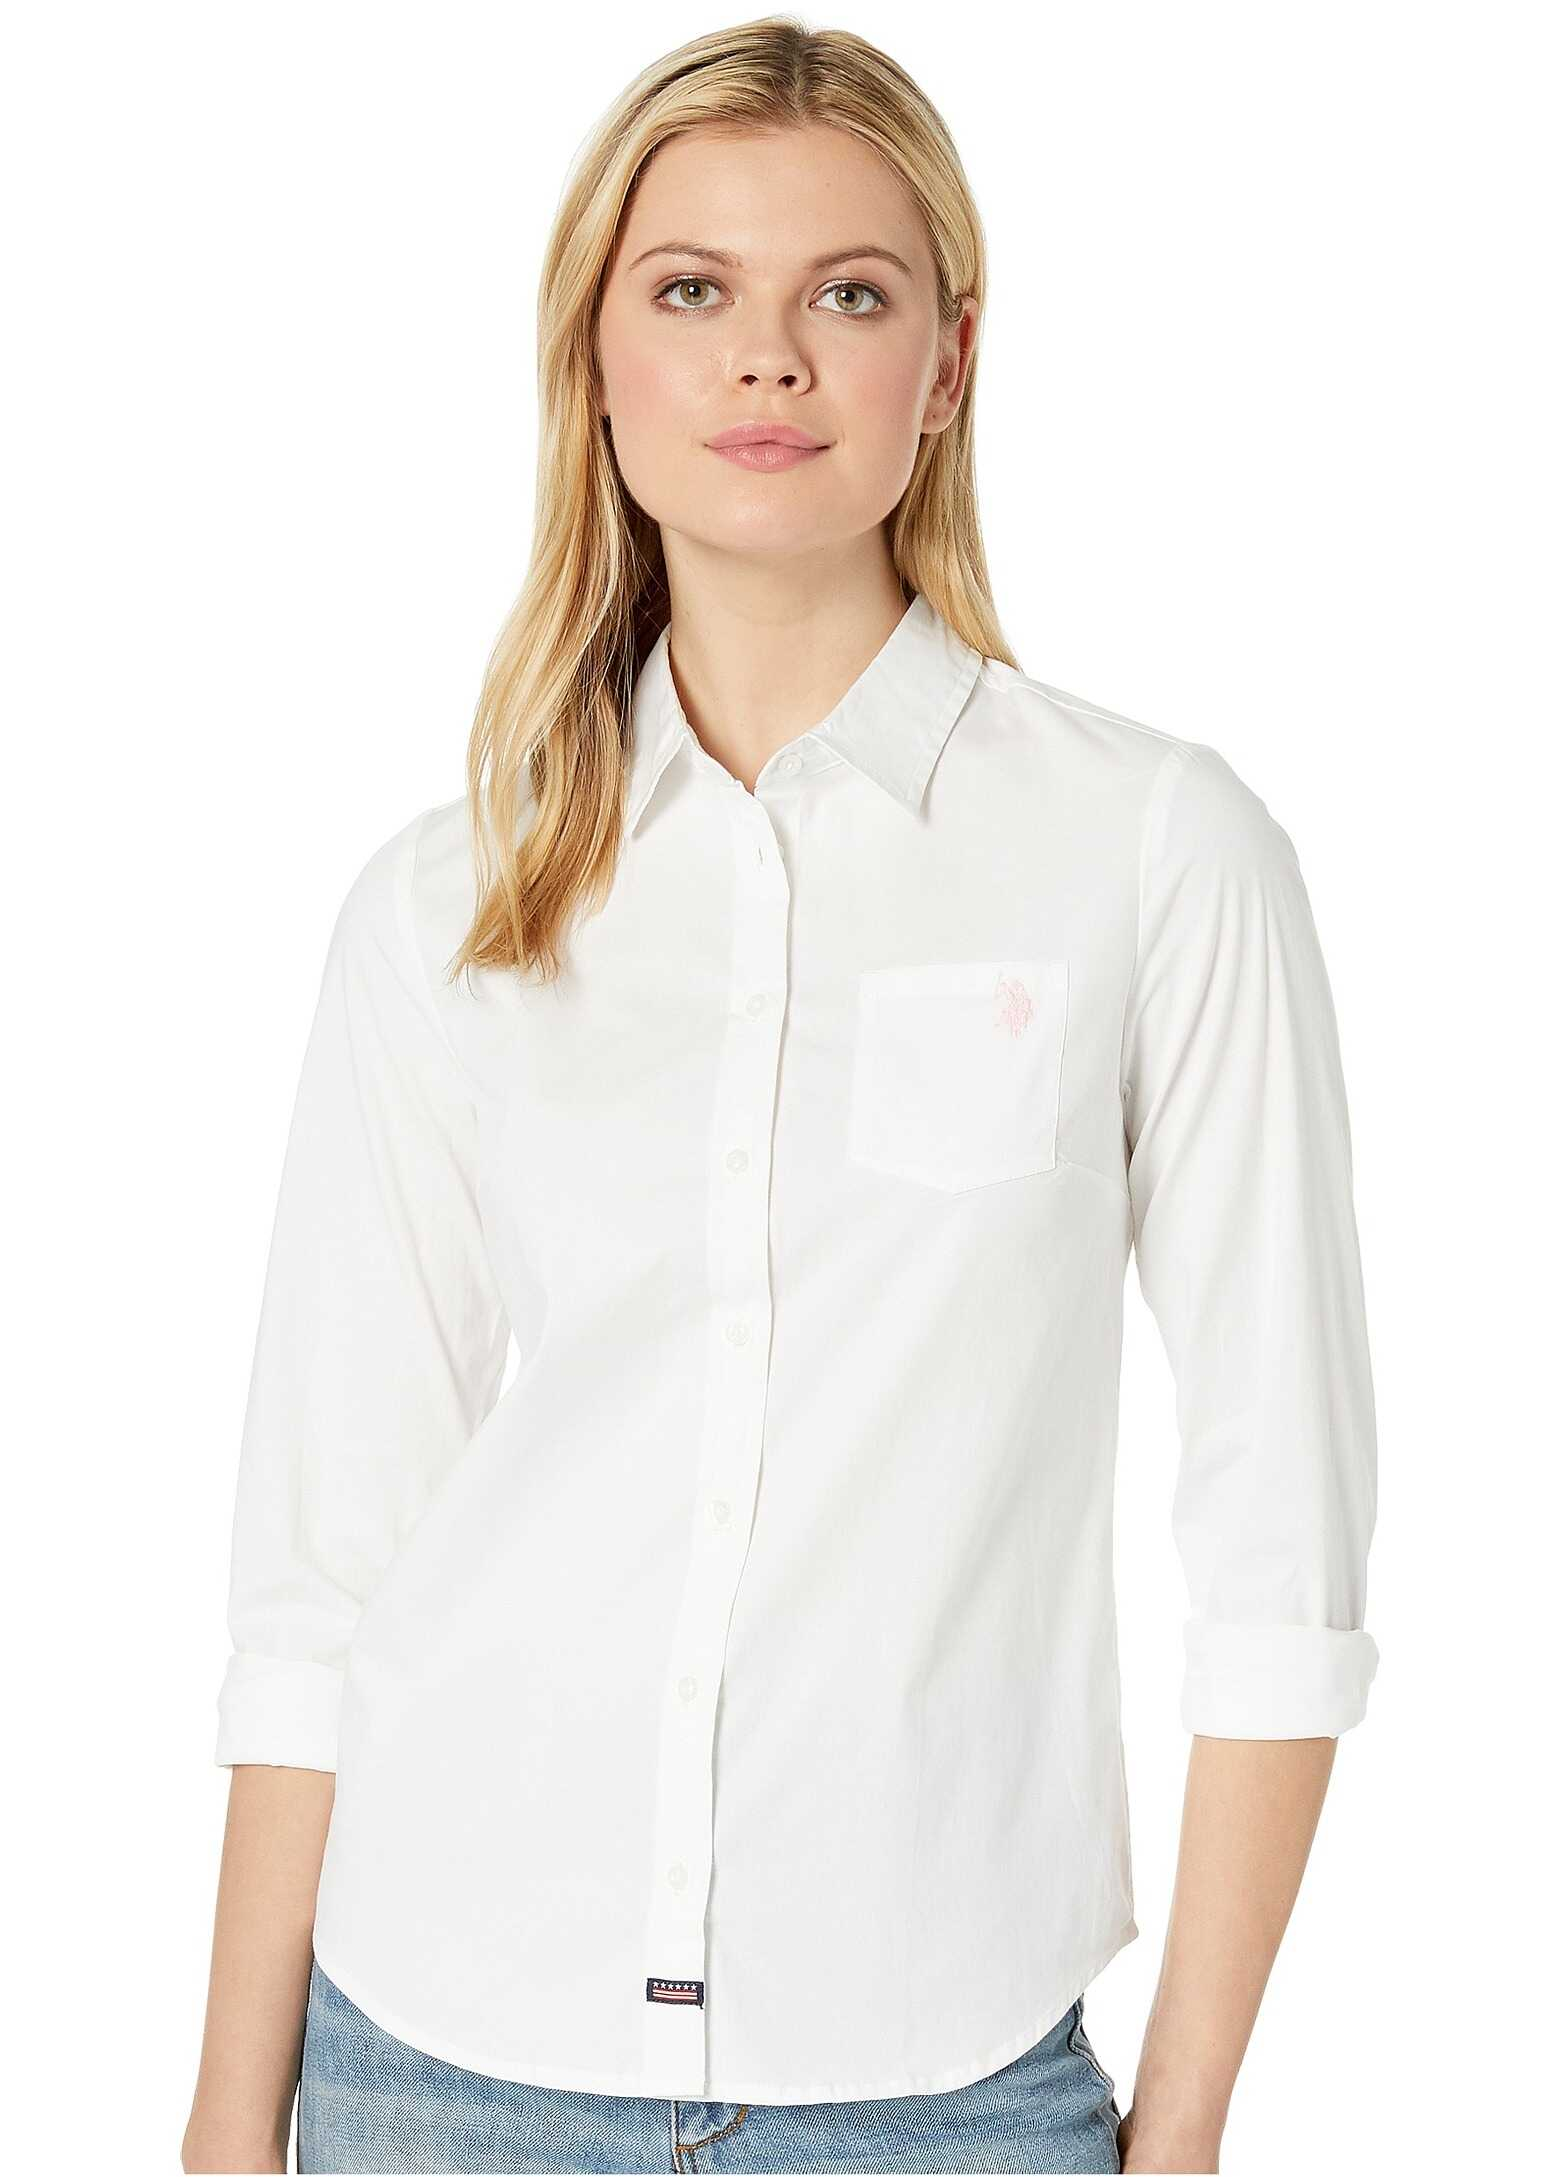 U.S. POLO ASSN. Woven Pocket Shirt Optic White